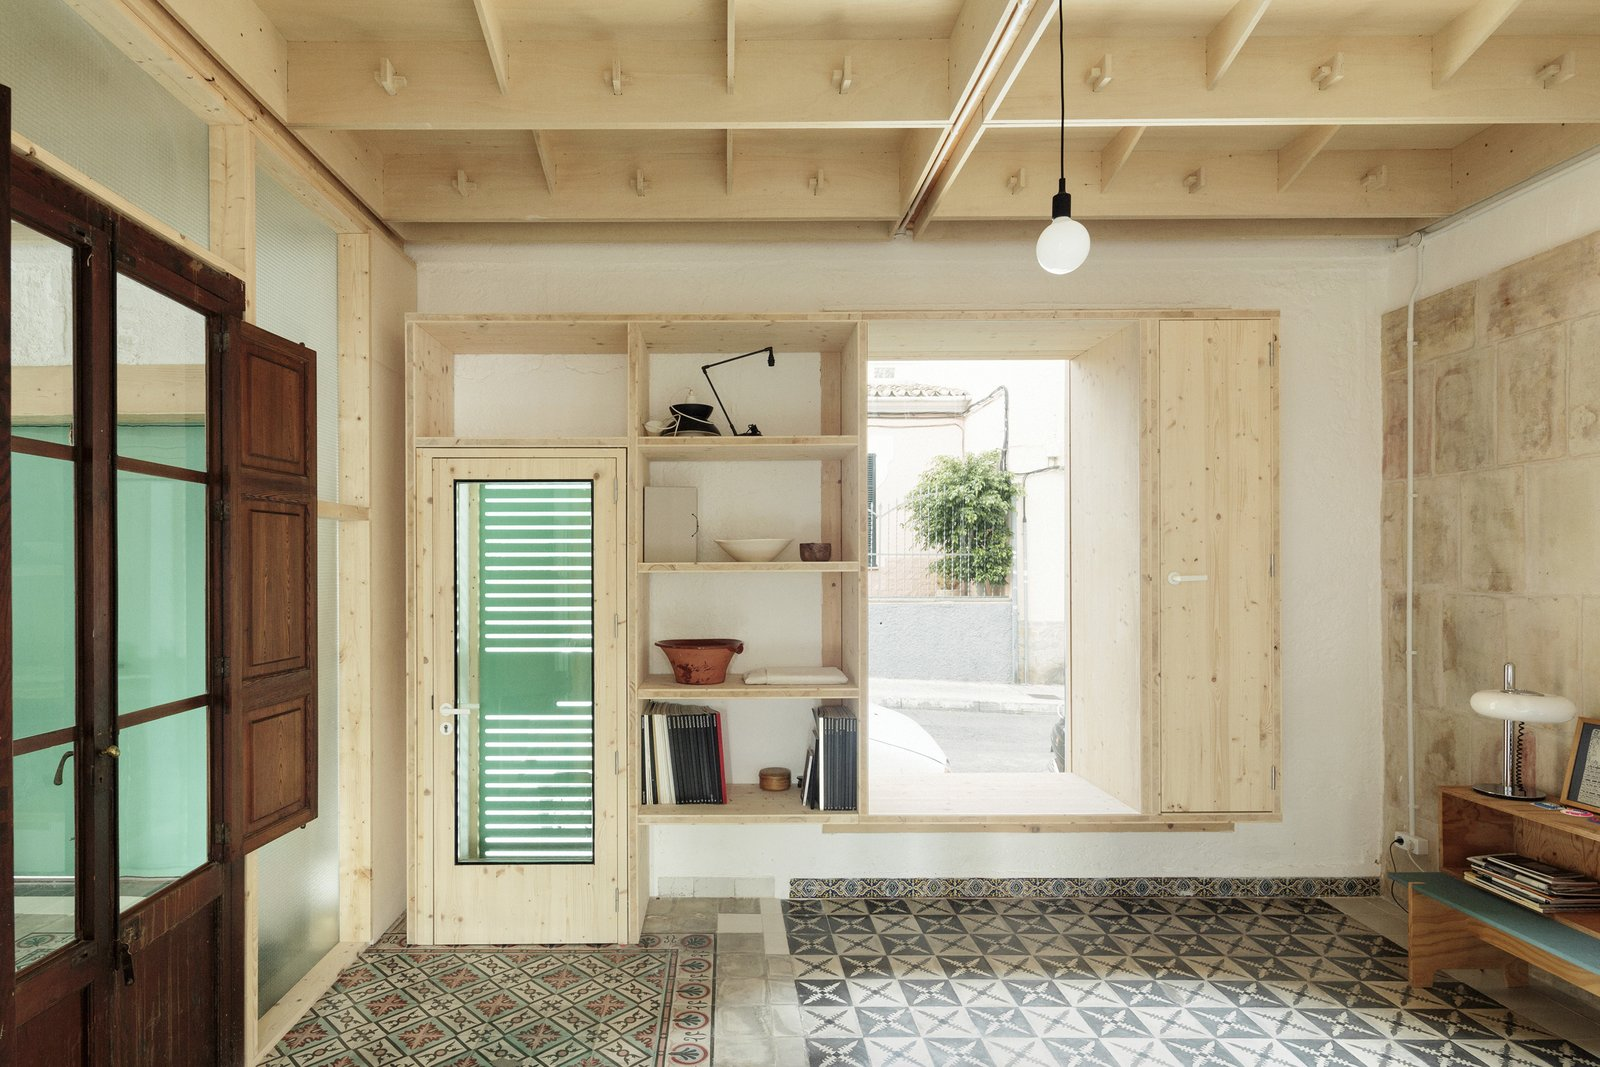 Living, Ceramic Tile, Table, Shelves, Storage, Lamps, Pendant, and Console Tables Light from outdoors streams into one of the atmospheric interior spaces.  Best Living Ceramic Tile Console Tables Photos from A Luminous Plywood Addition Crowns This Mallorca Townhouse